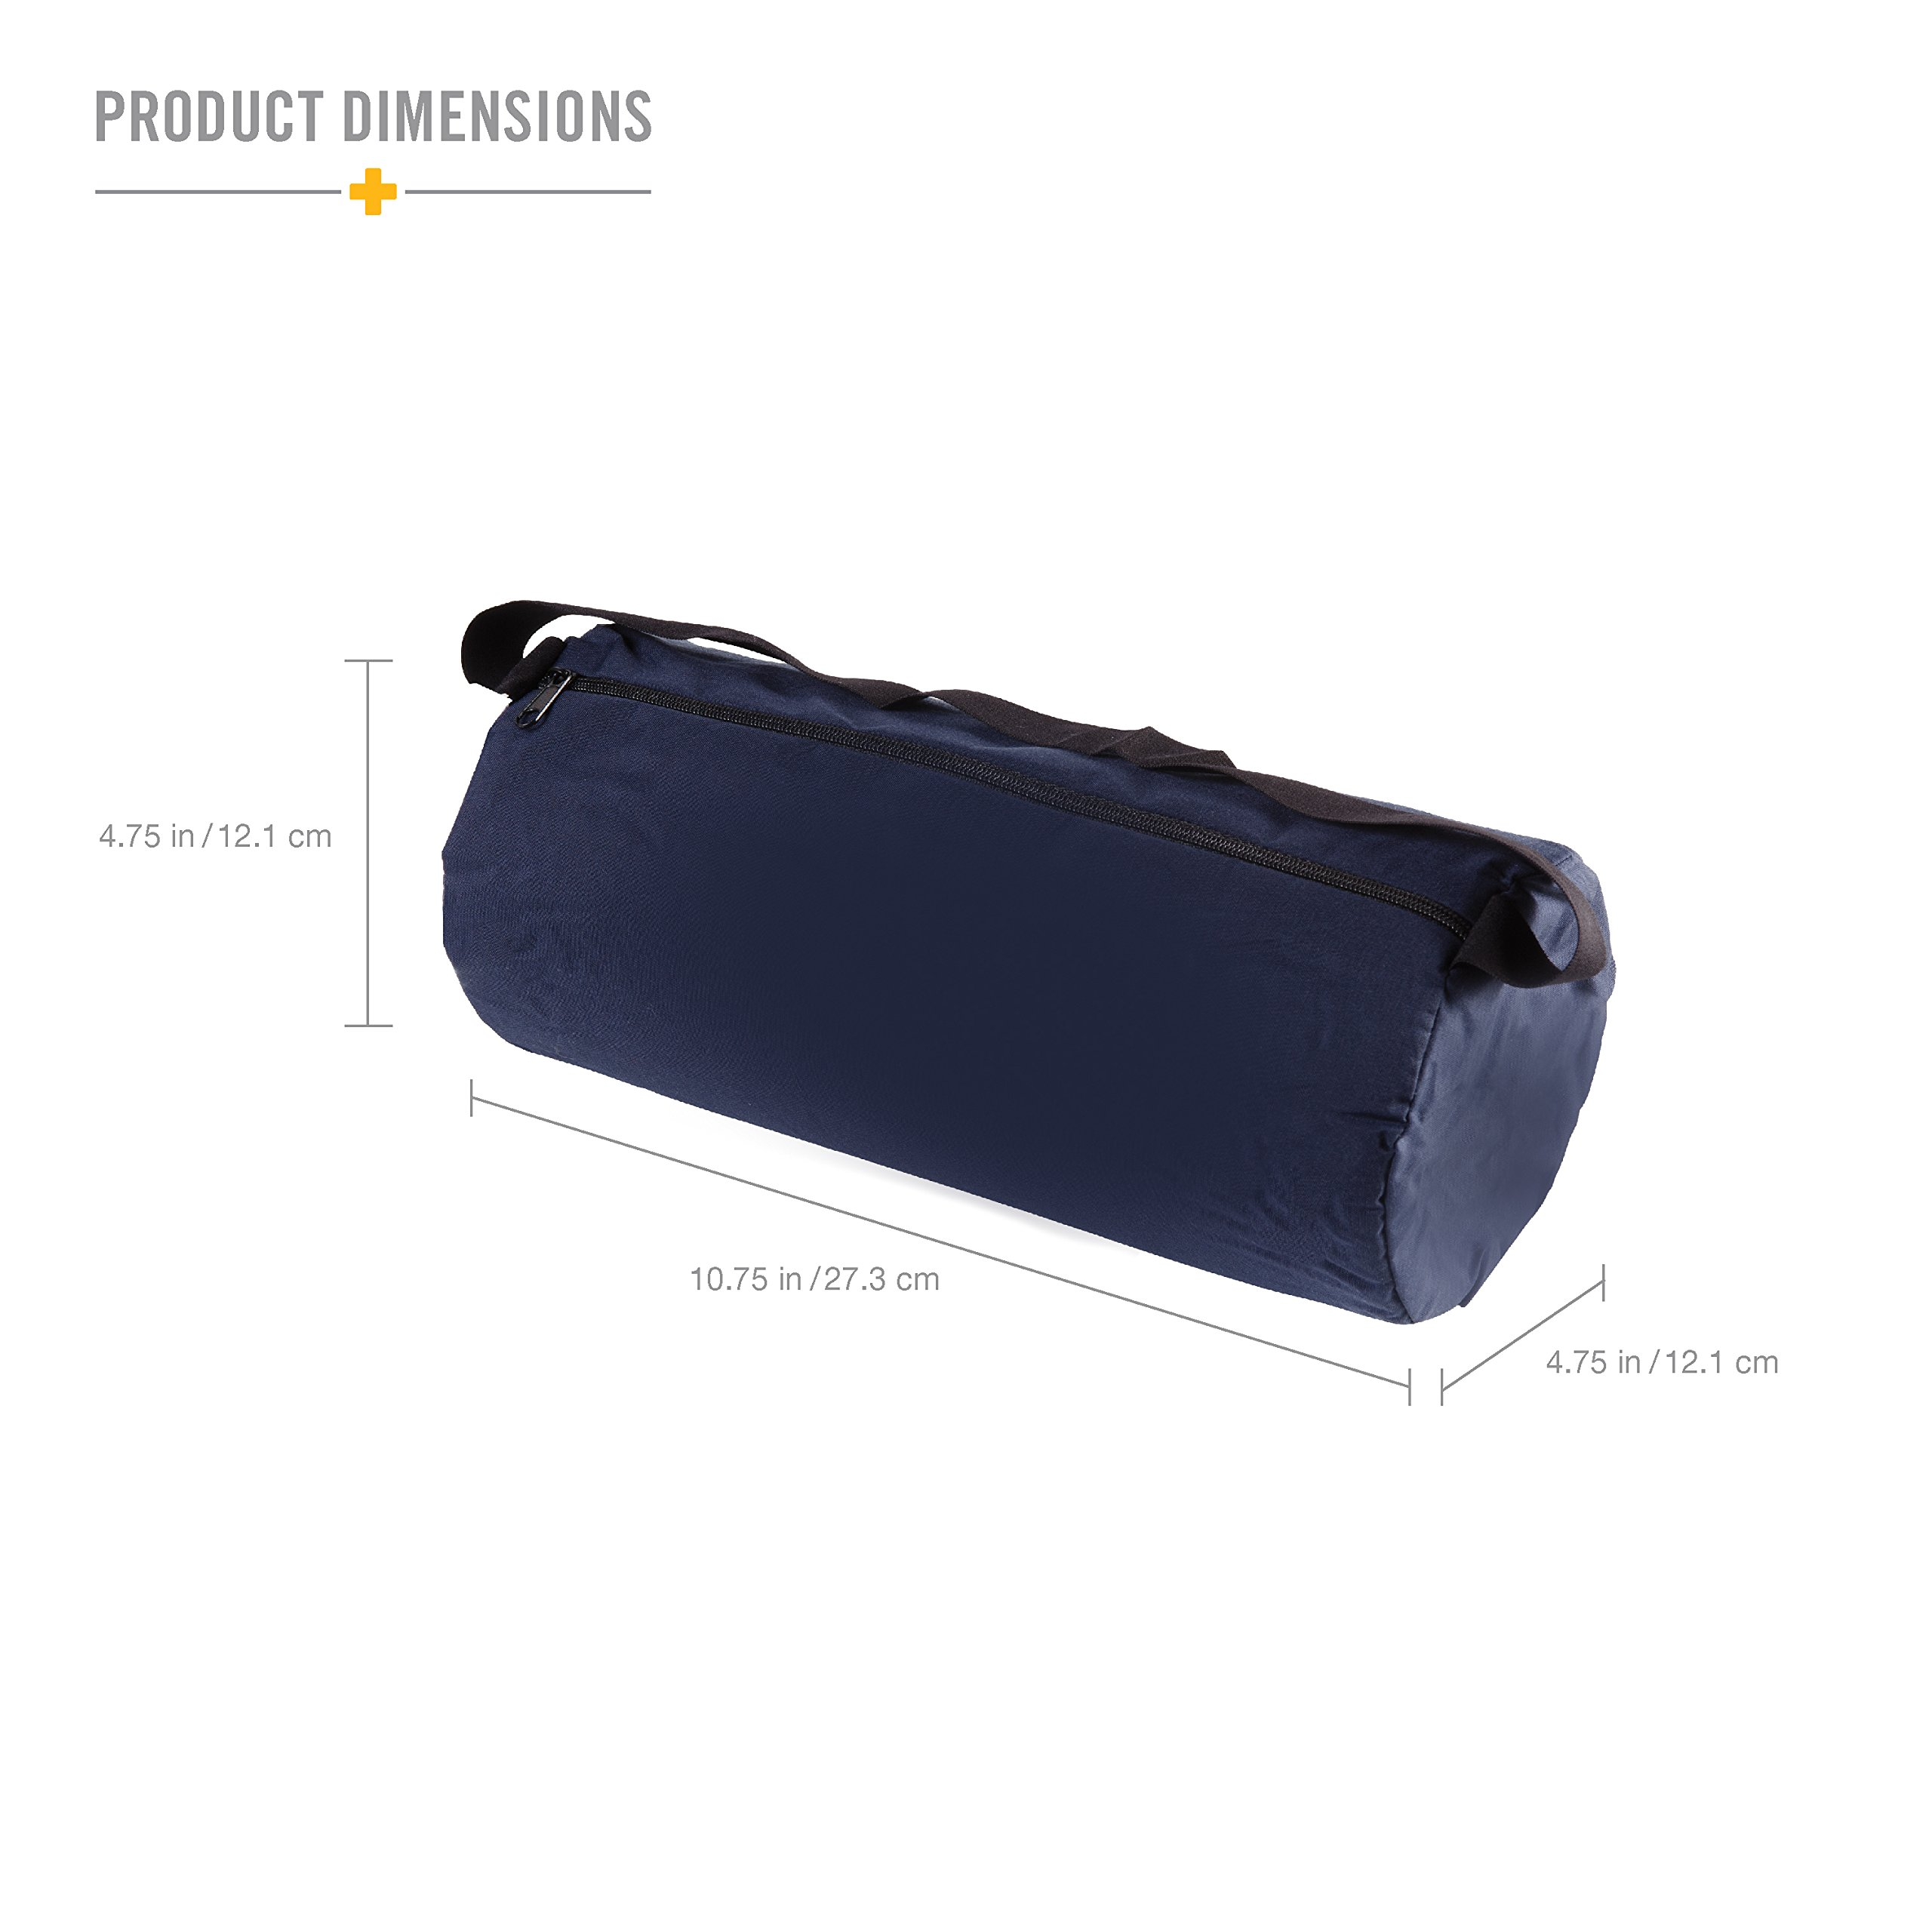 DMI Lumbar Roll Back Support Cushion Pillow - Foam Lumbar Cushion with Cover and Strap, Navy by Duro-Med (Image #3)